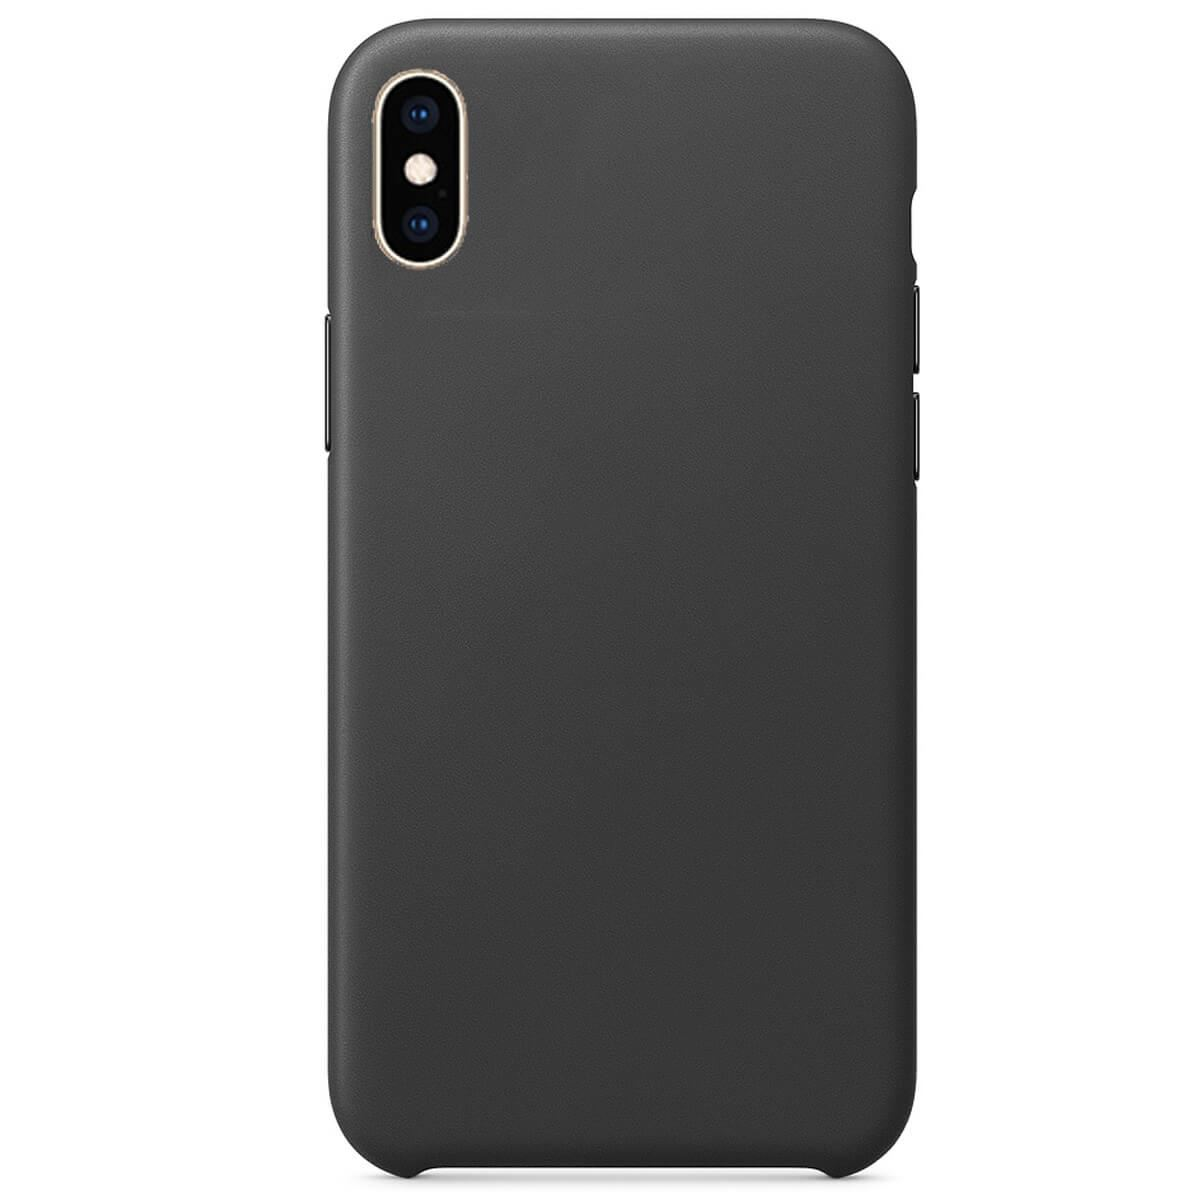 Liquid-Silicone-Shockproof-Case-For-Apple-iPhone-Soft-Matte-Back-Phone-Cover thumbnail 8